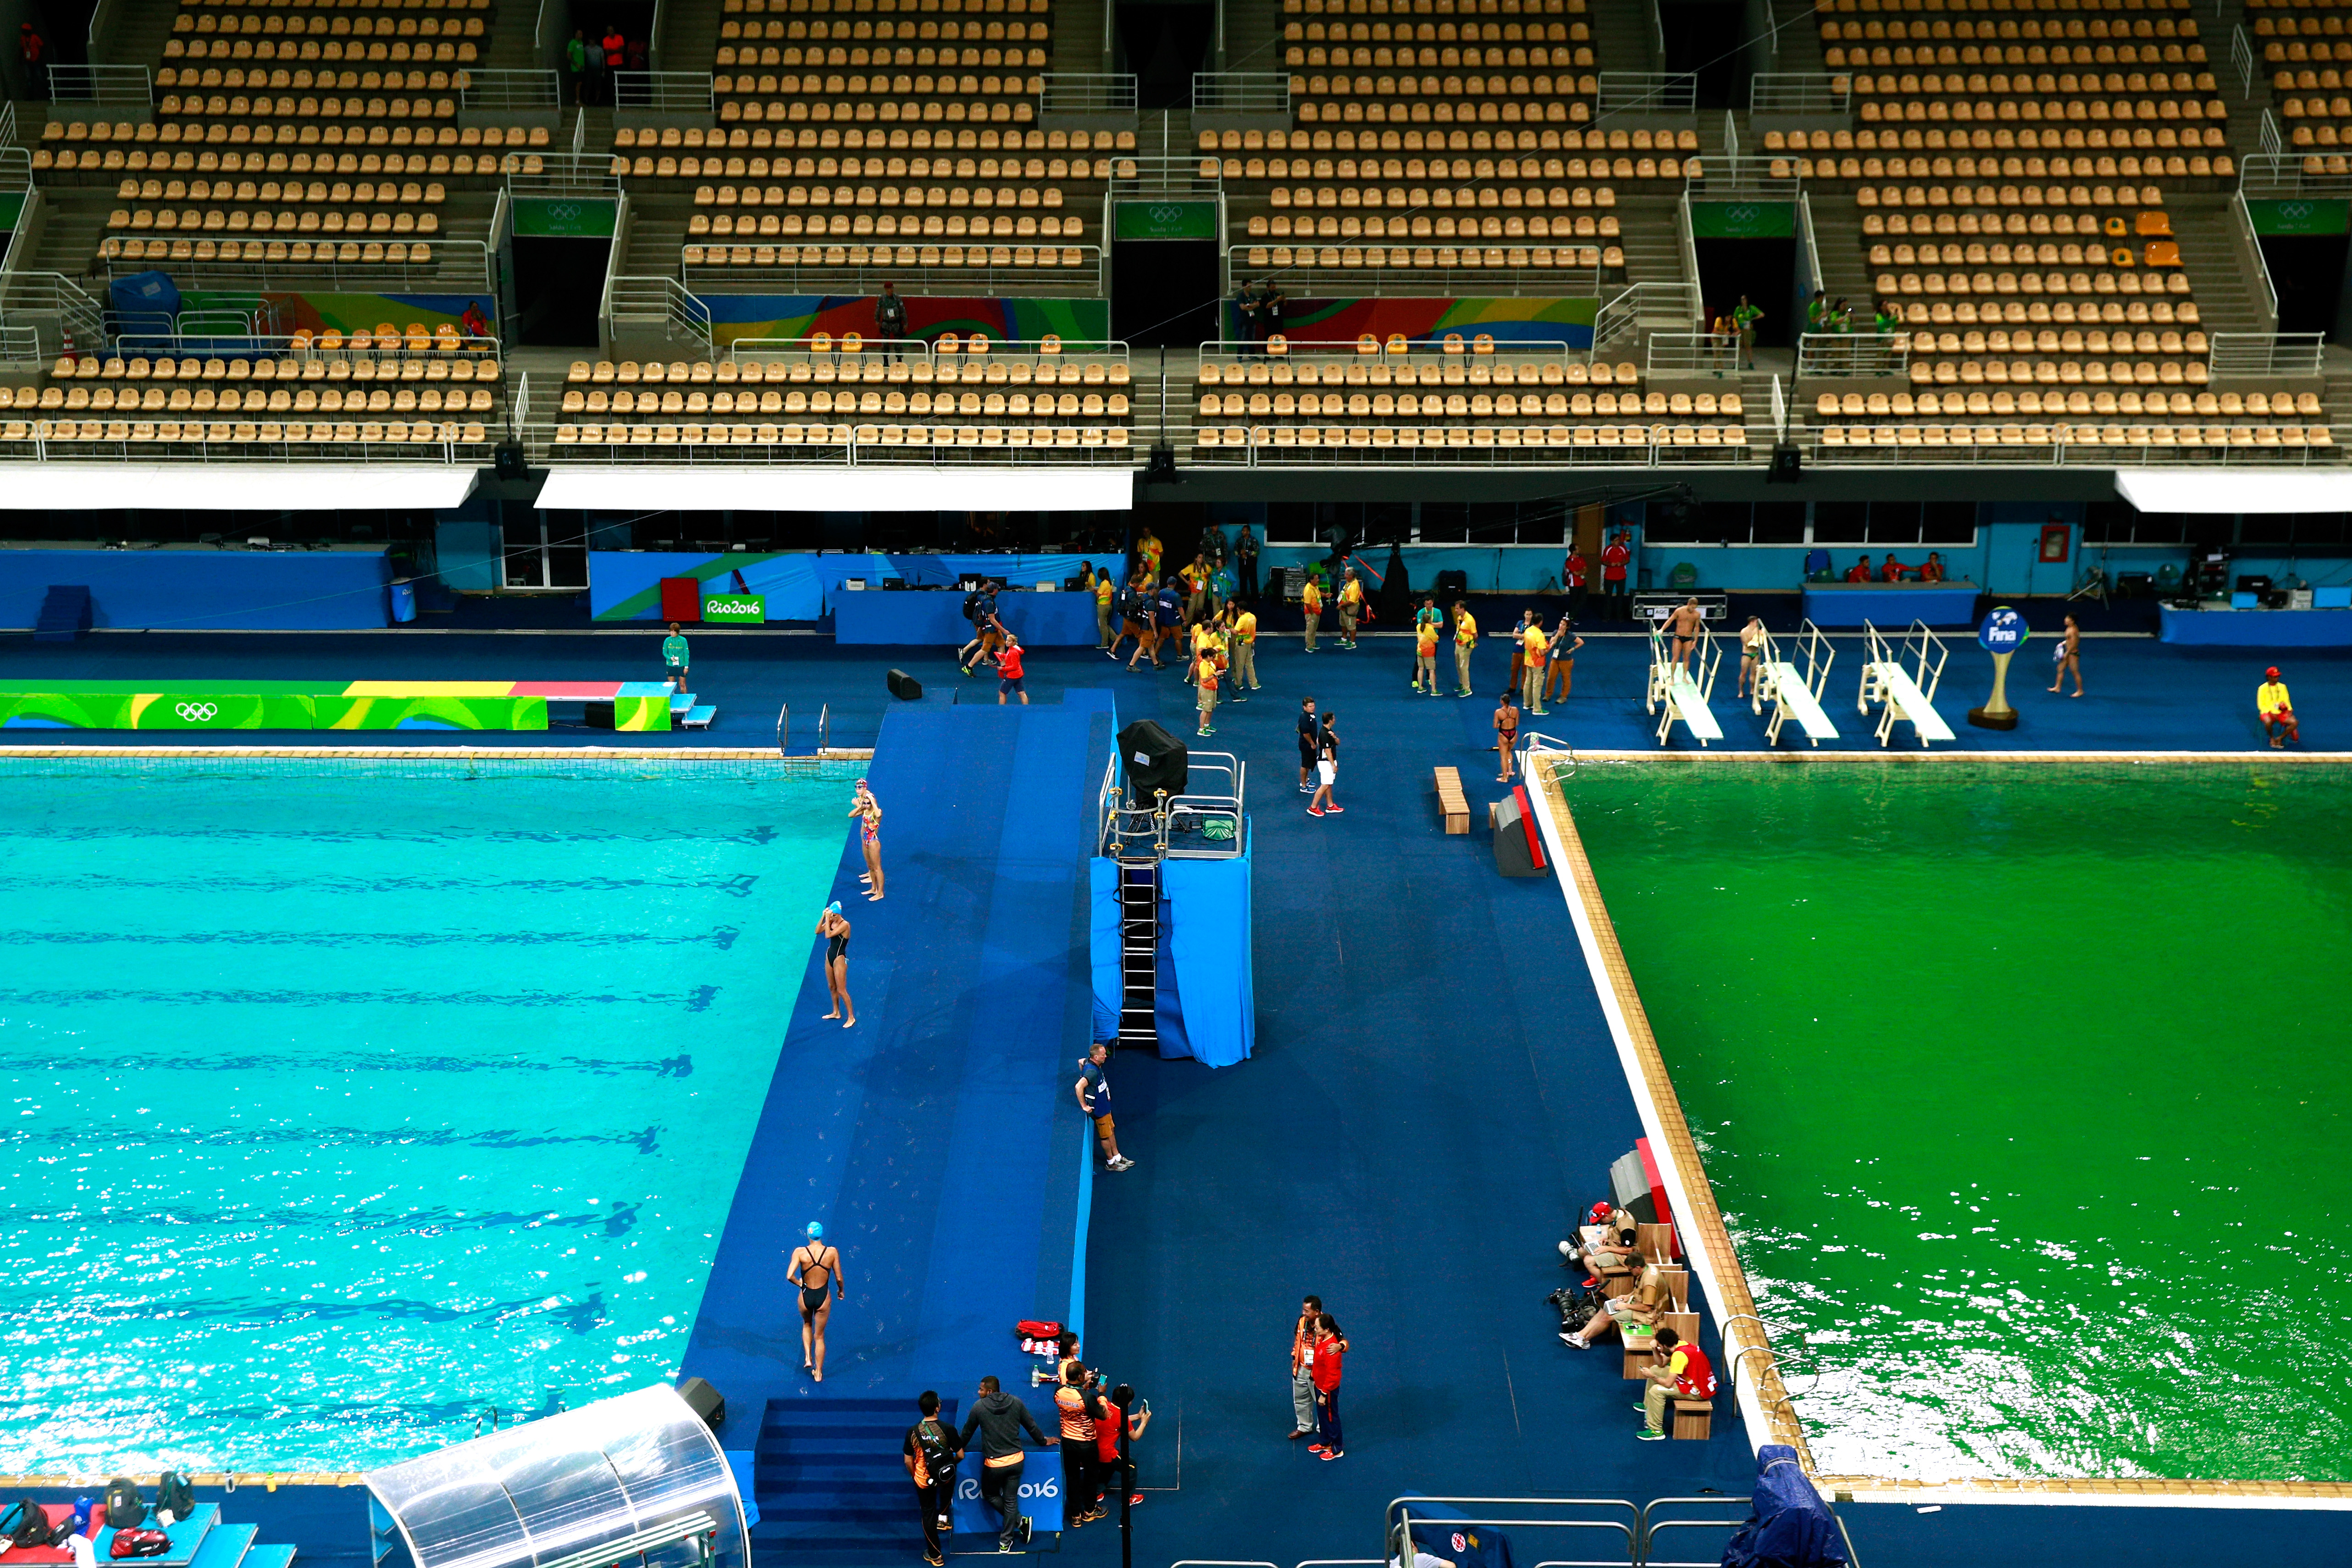 The diving pool at the Olympics is closed after turning green ...